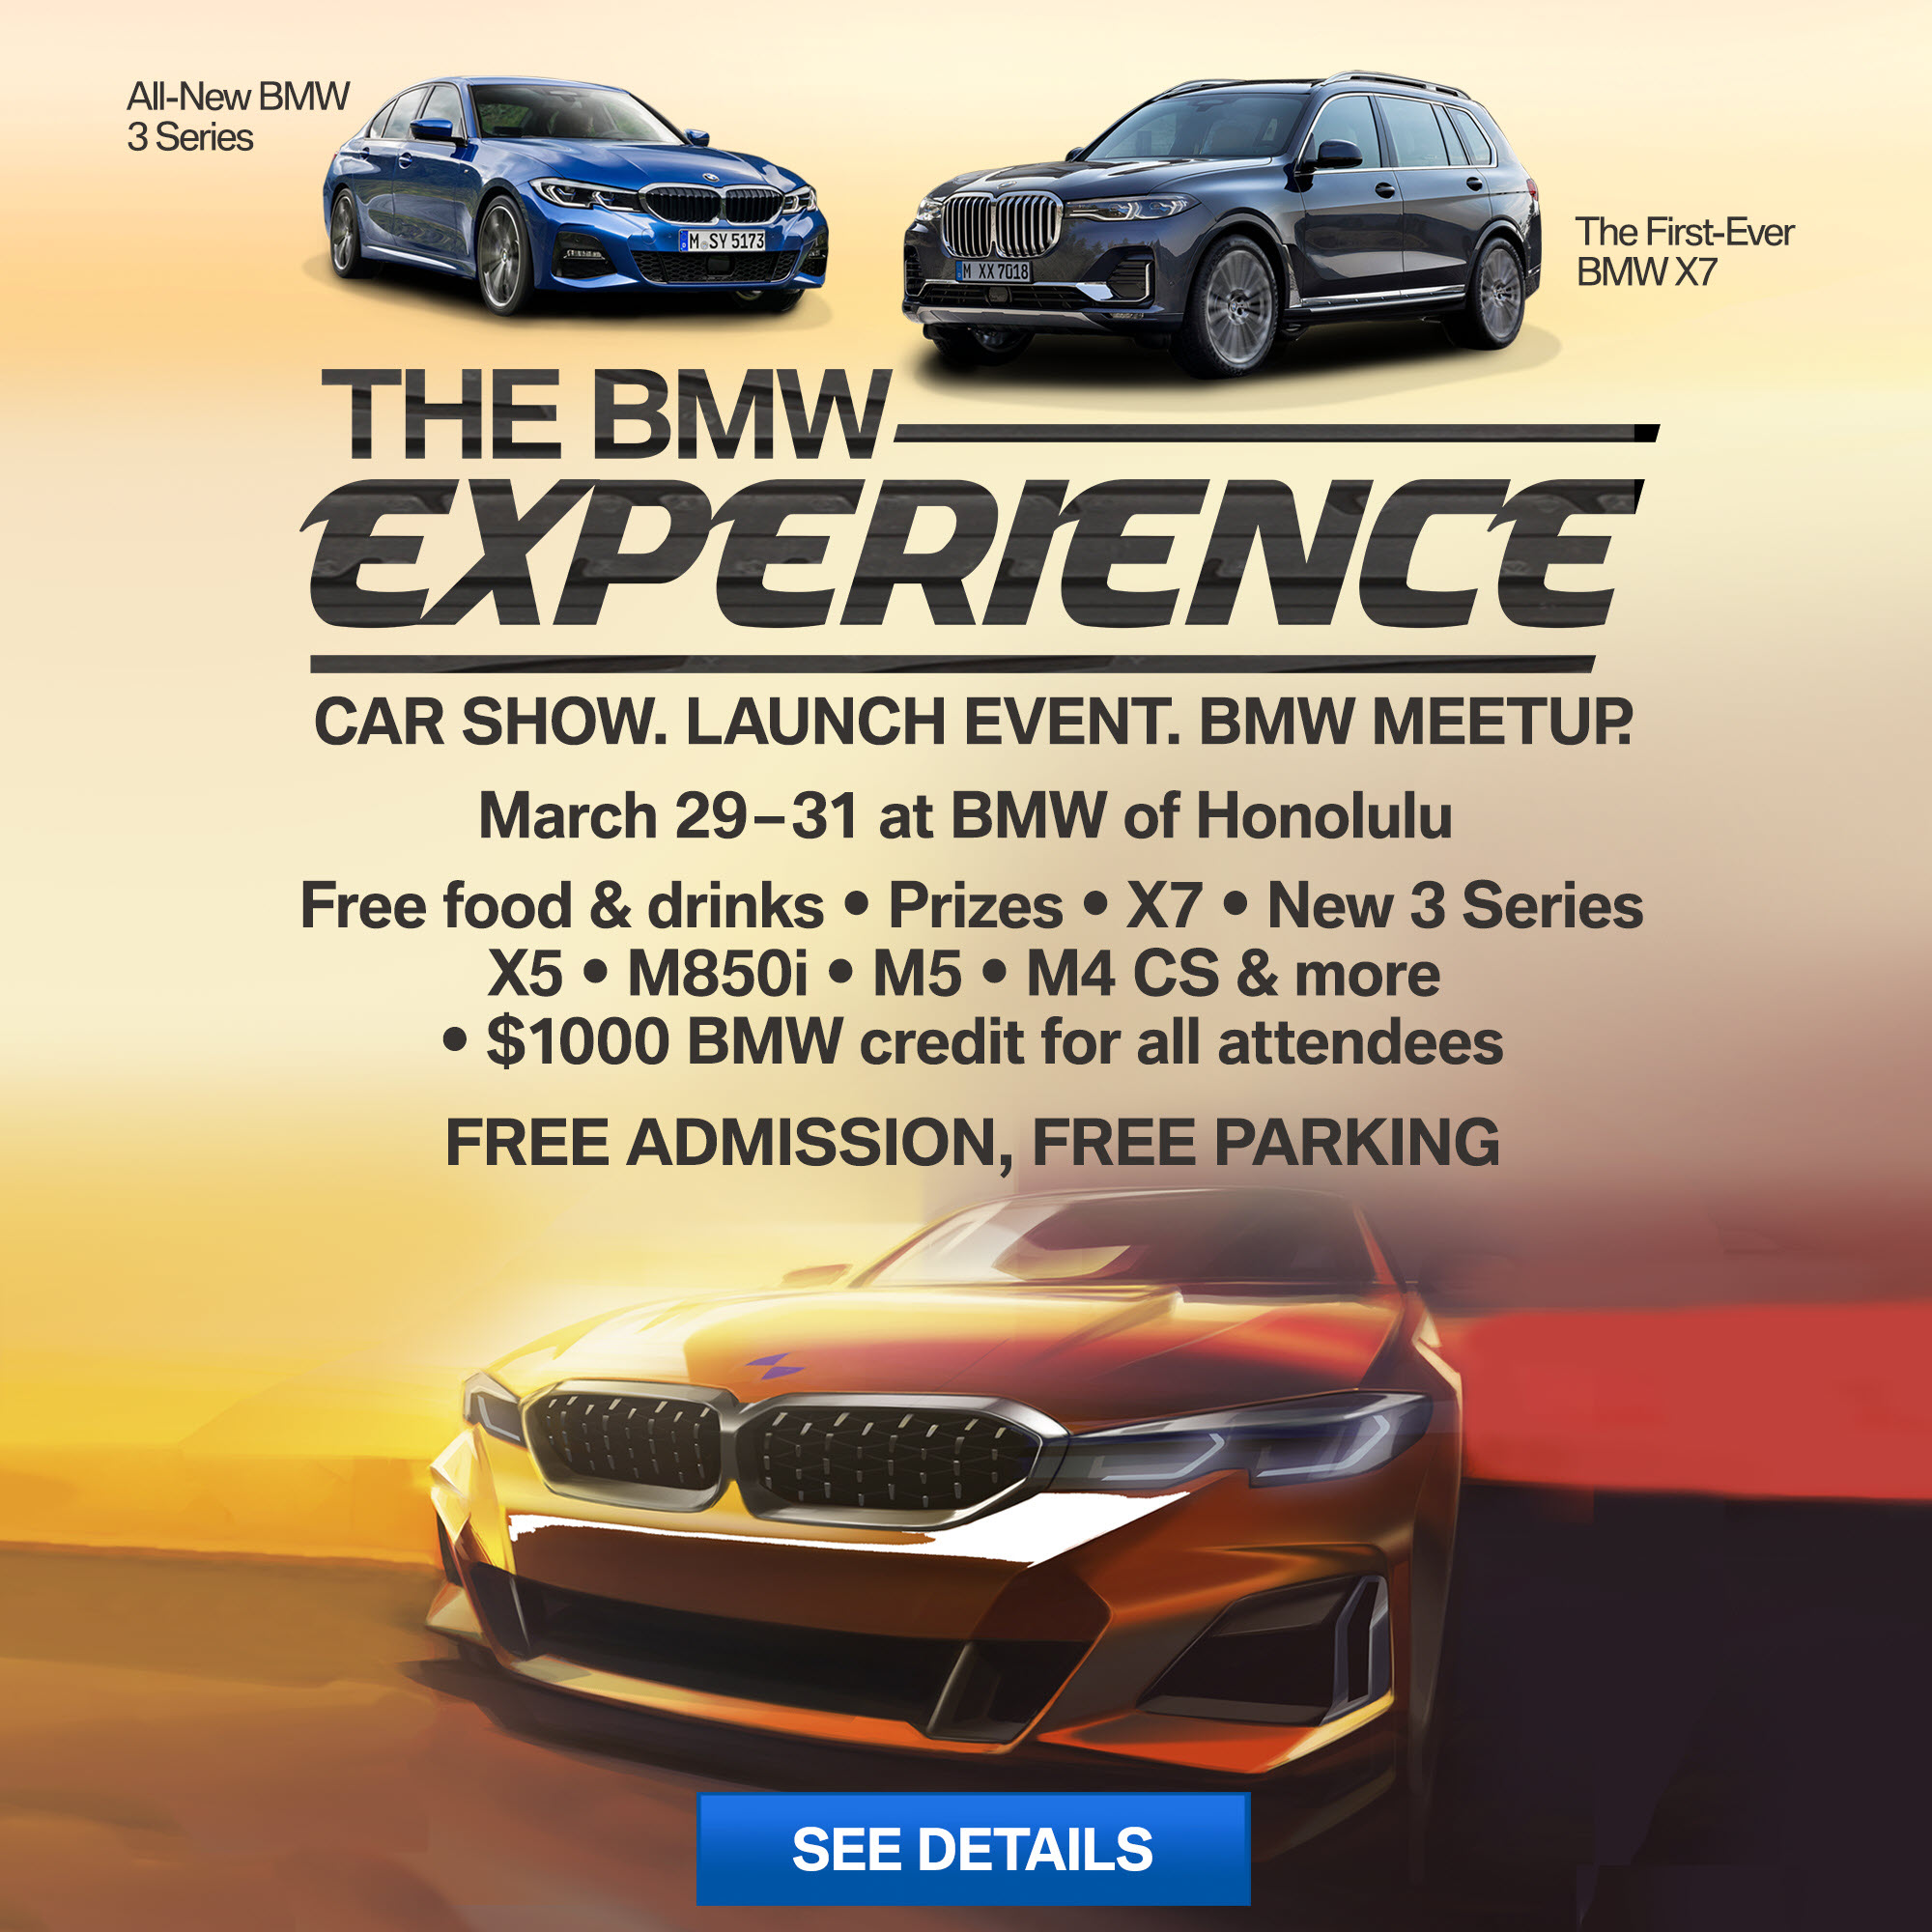 The BMW Experience